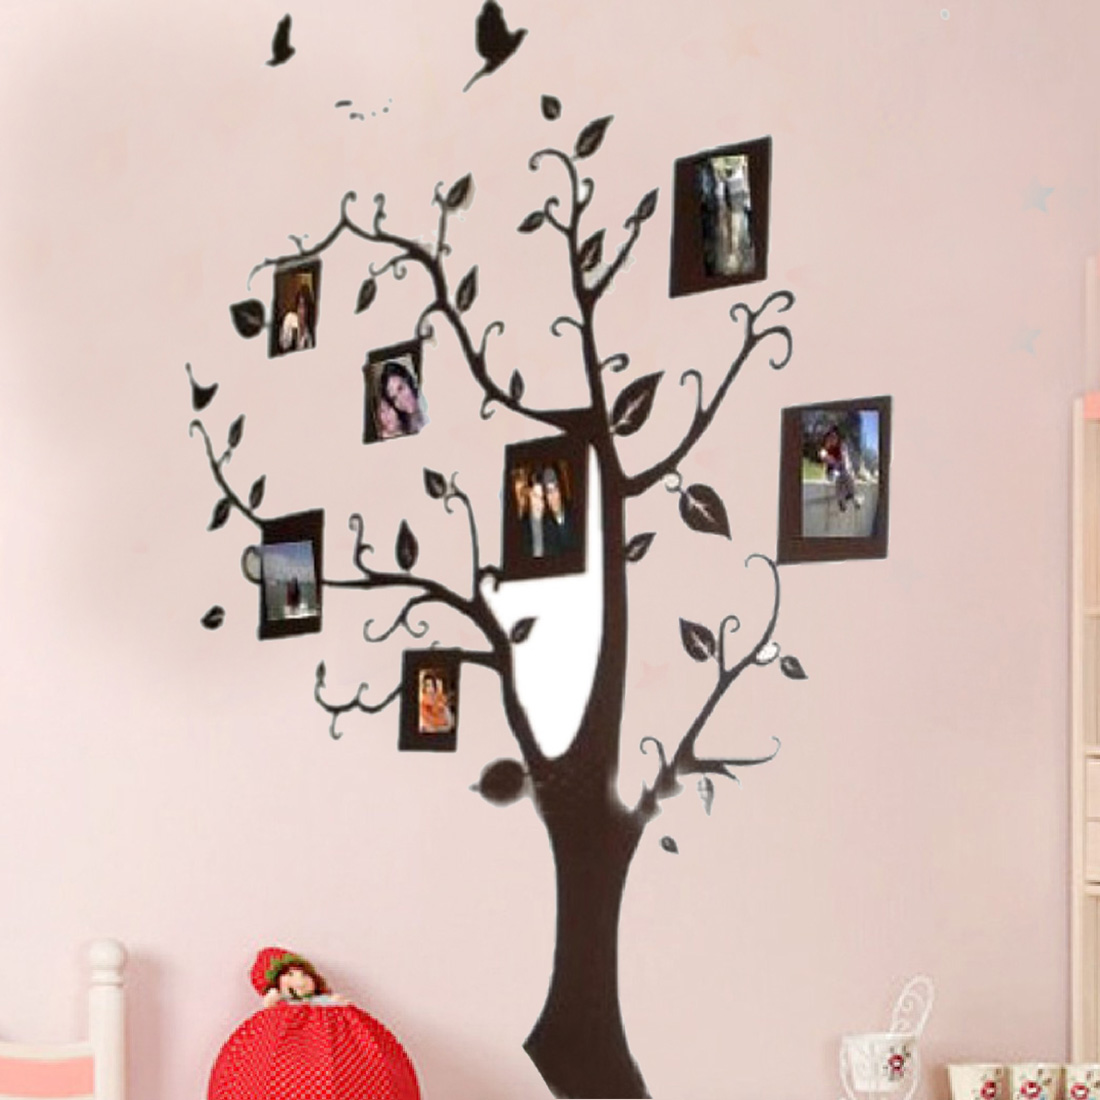 compare prices on wall adhesive stickers online shopping buy low new large size diy photo tree frame pvc wall decals adhesive wall stickers mural art home